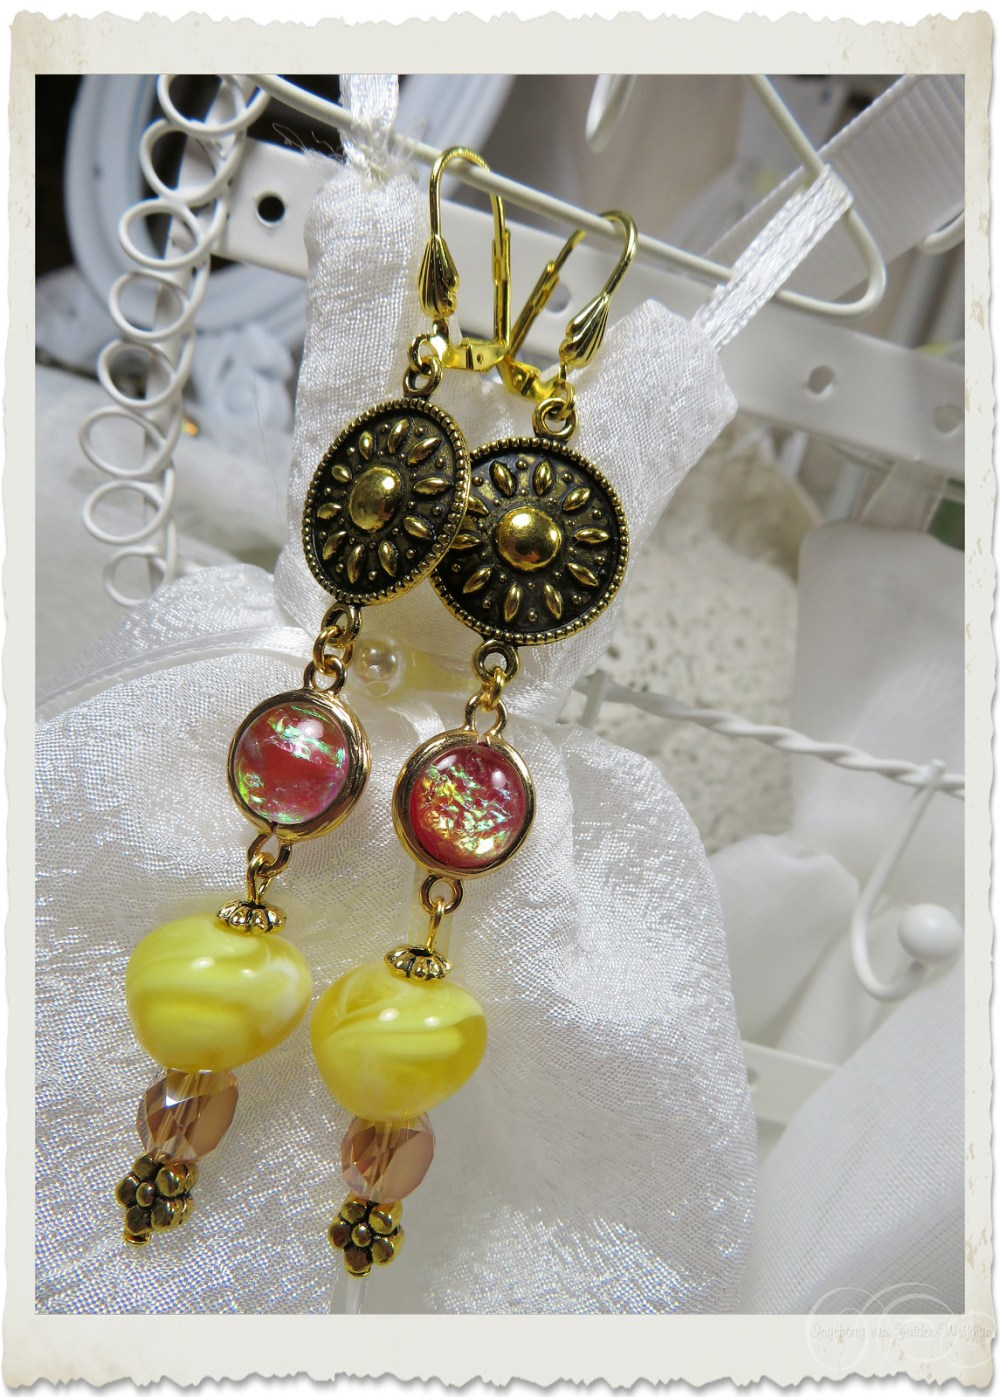 Handmade ornamental dangling earrings with opal findings